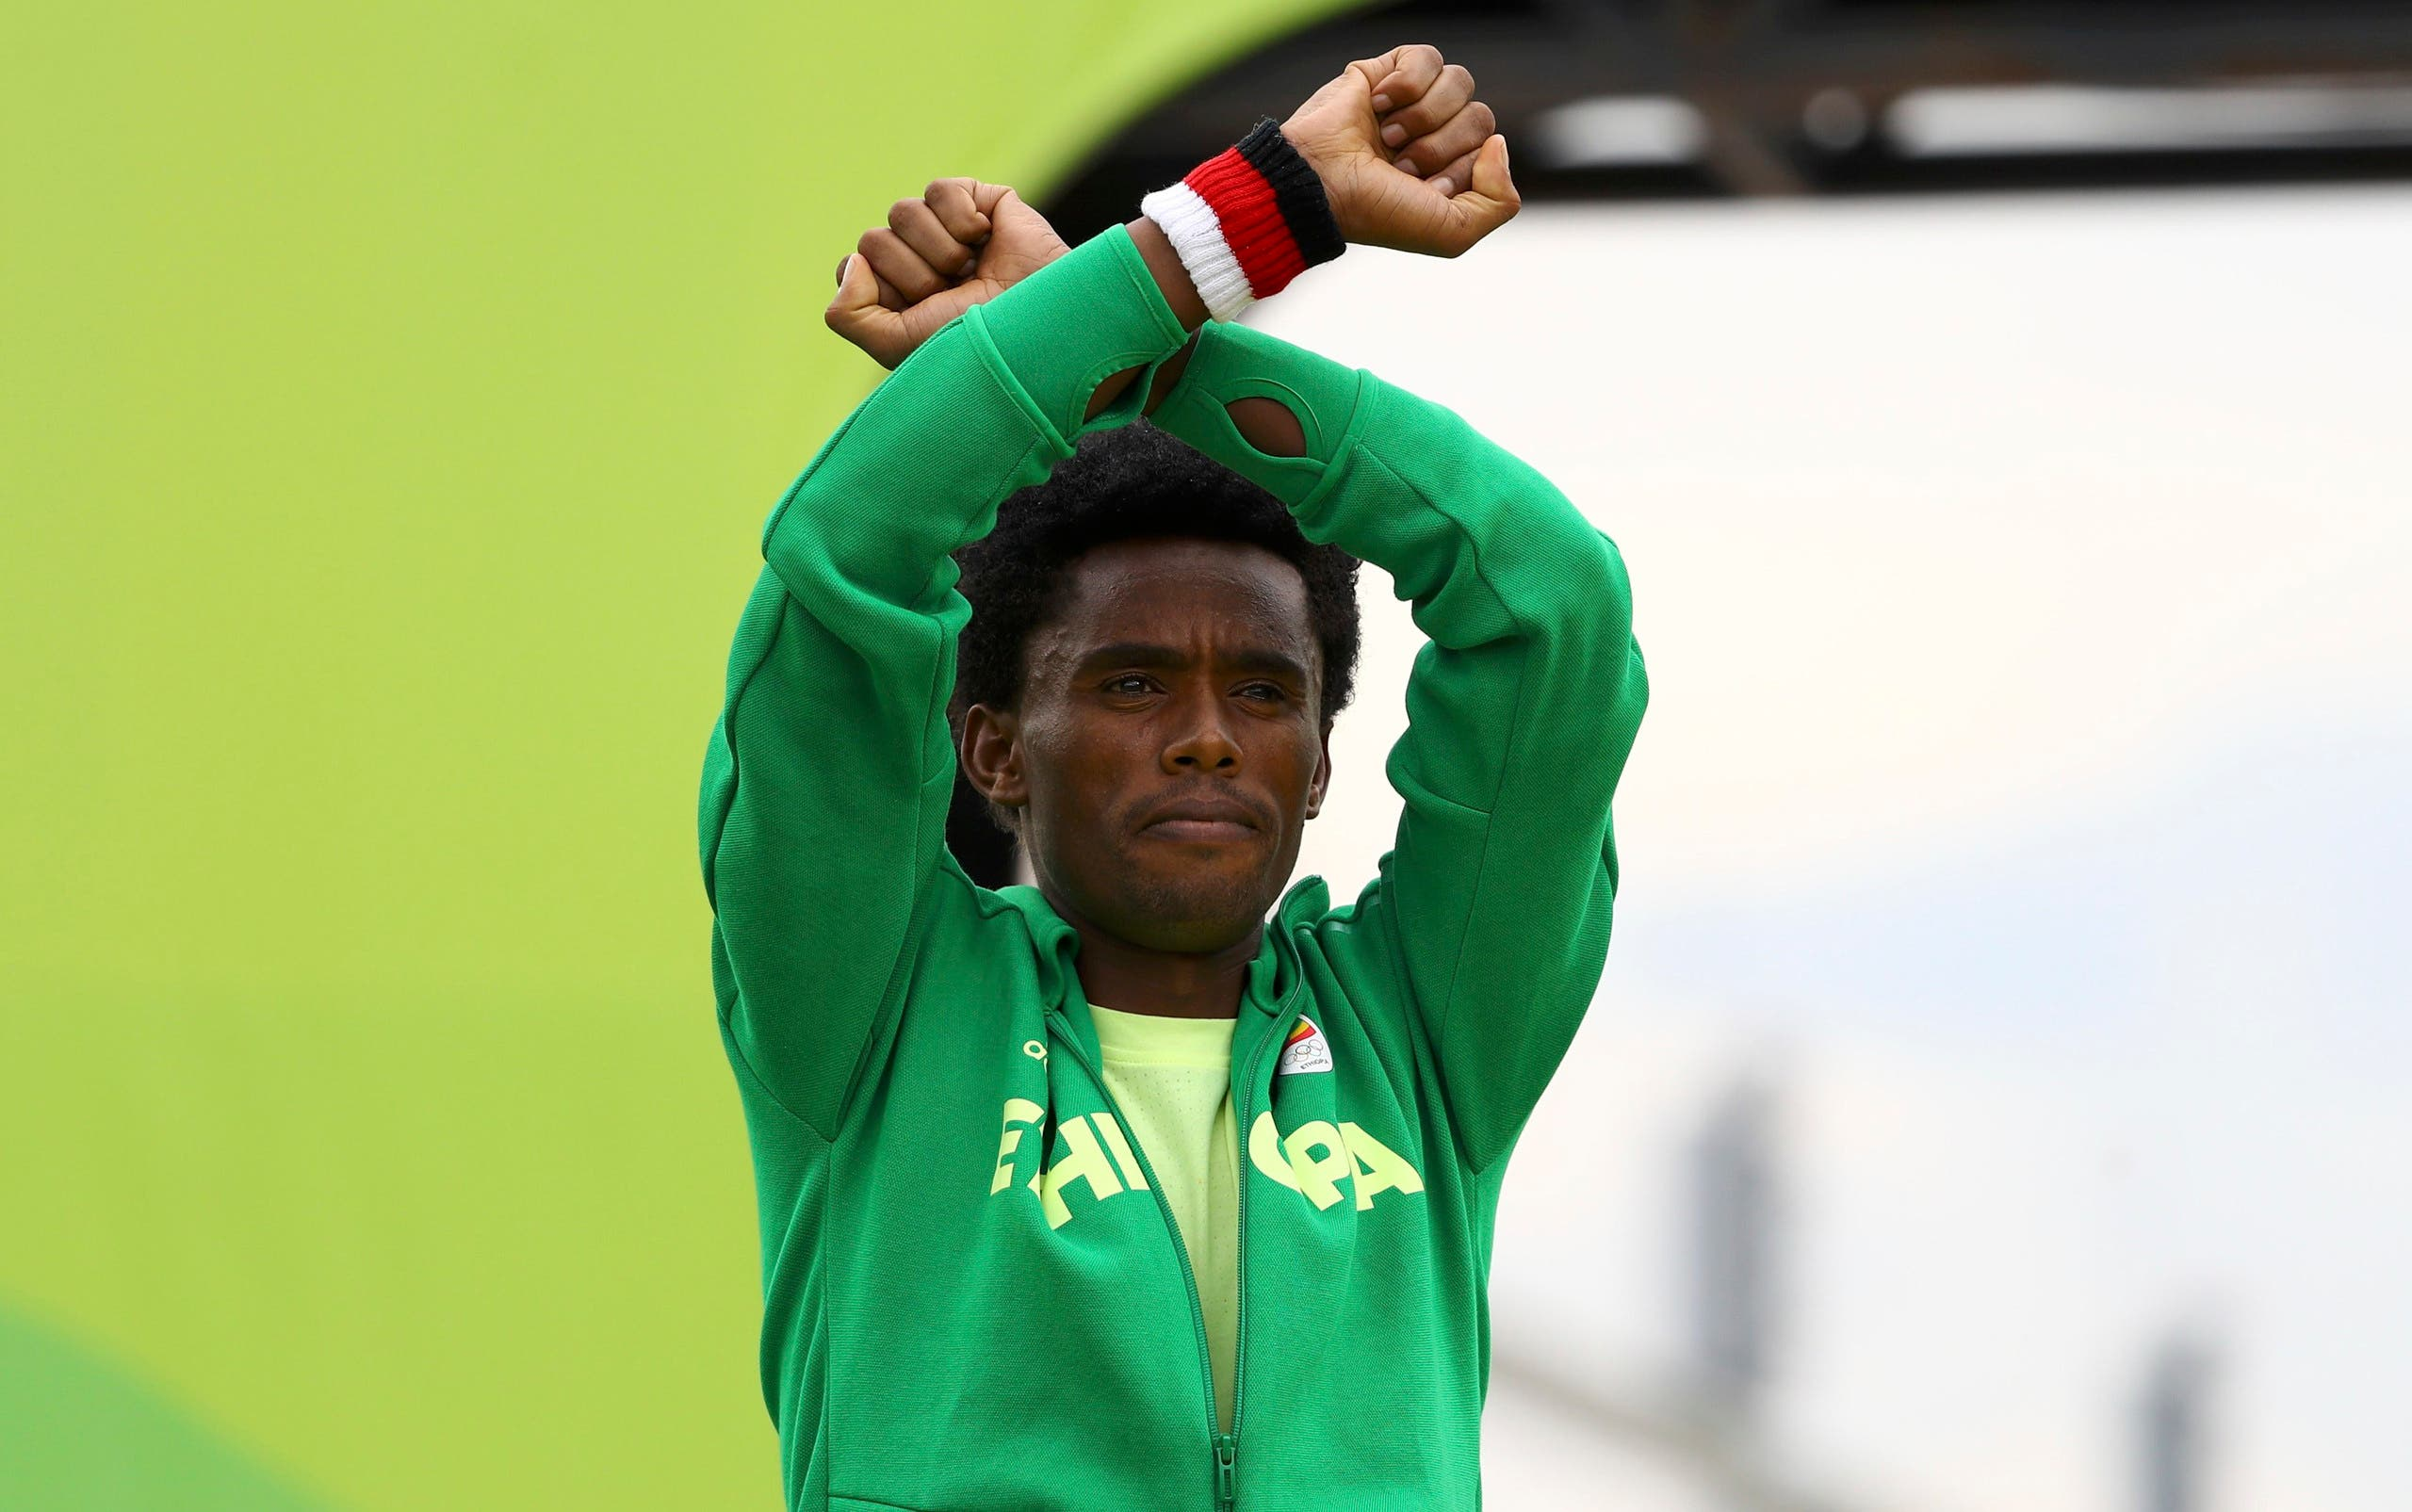 Olympic medallist Feyisa Lilesa's gesture was a plea for justice for his people. (Reuters)